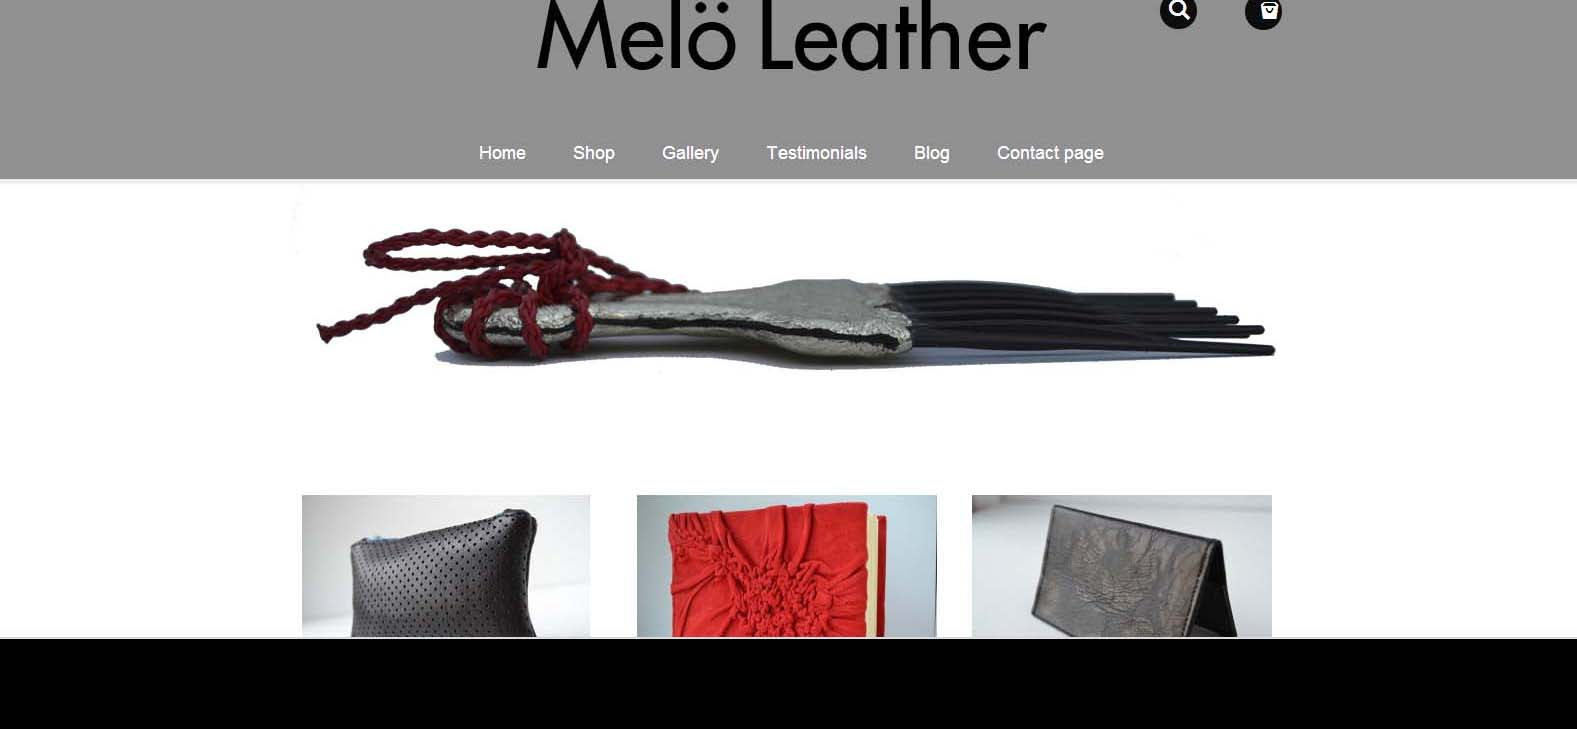 http://www.meloleather.co.uk/